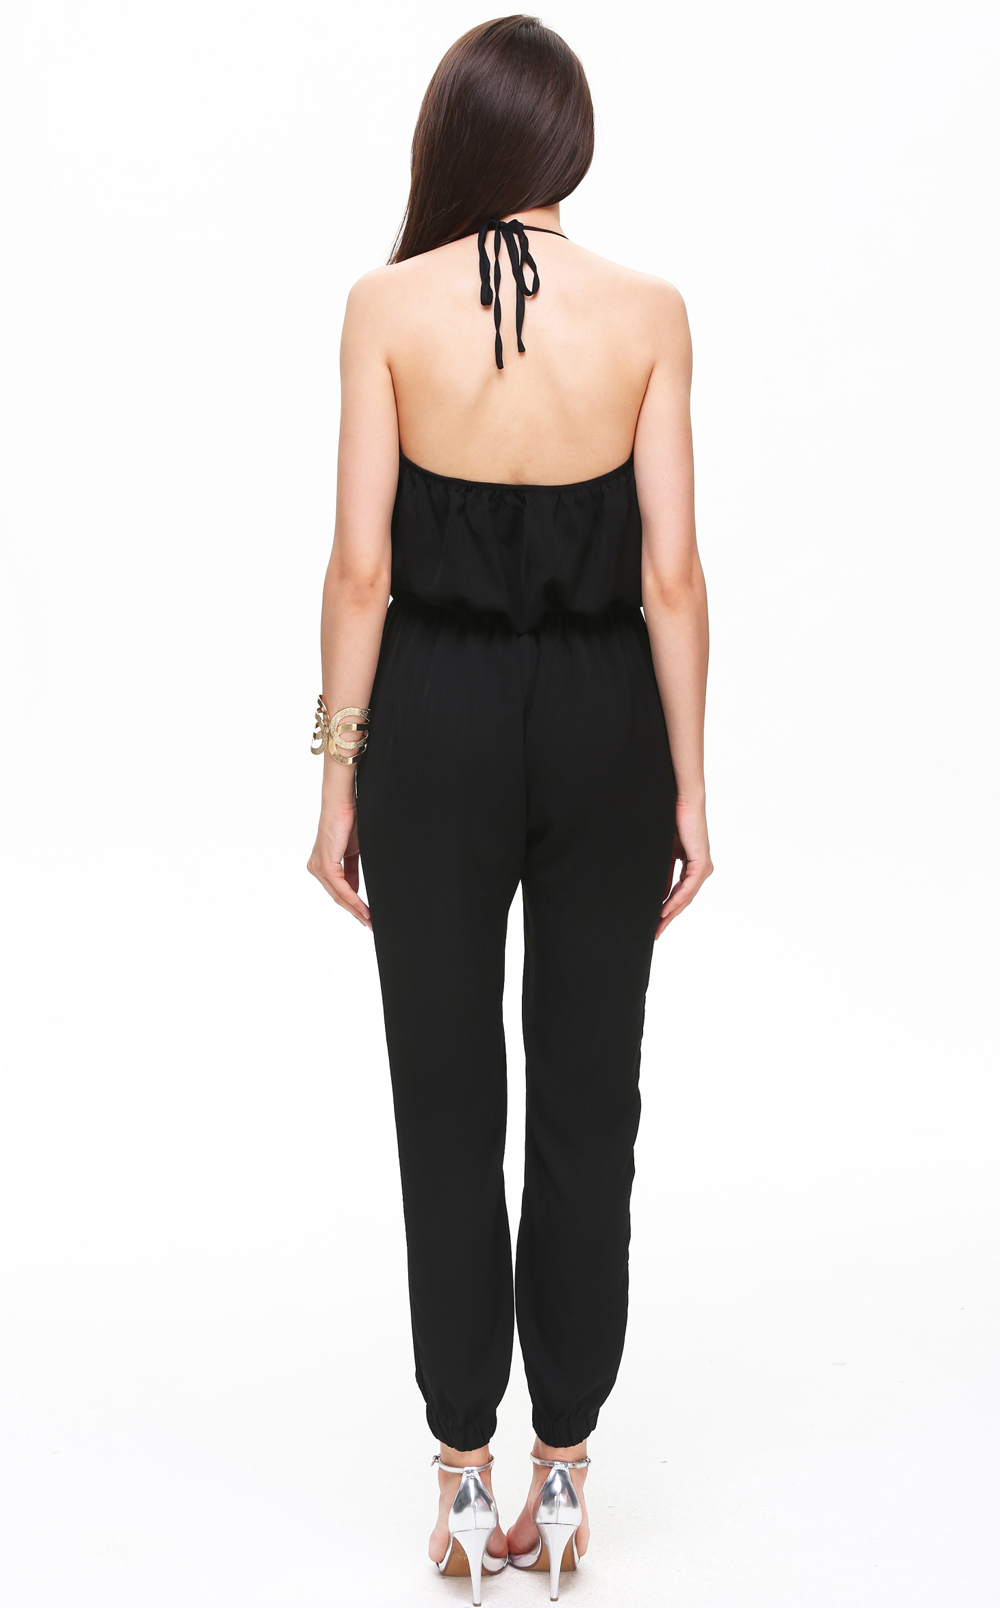 Black Spaghetti Strap V Neck Loose Jumpsuit - Sheinside.com